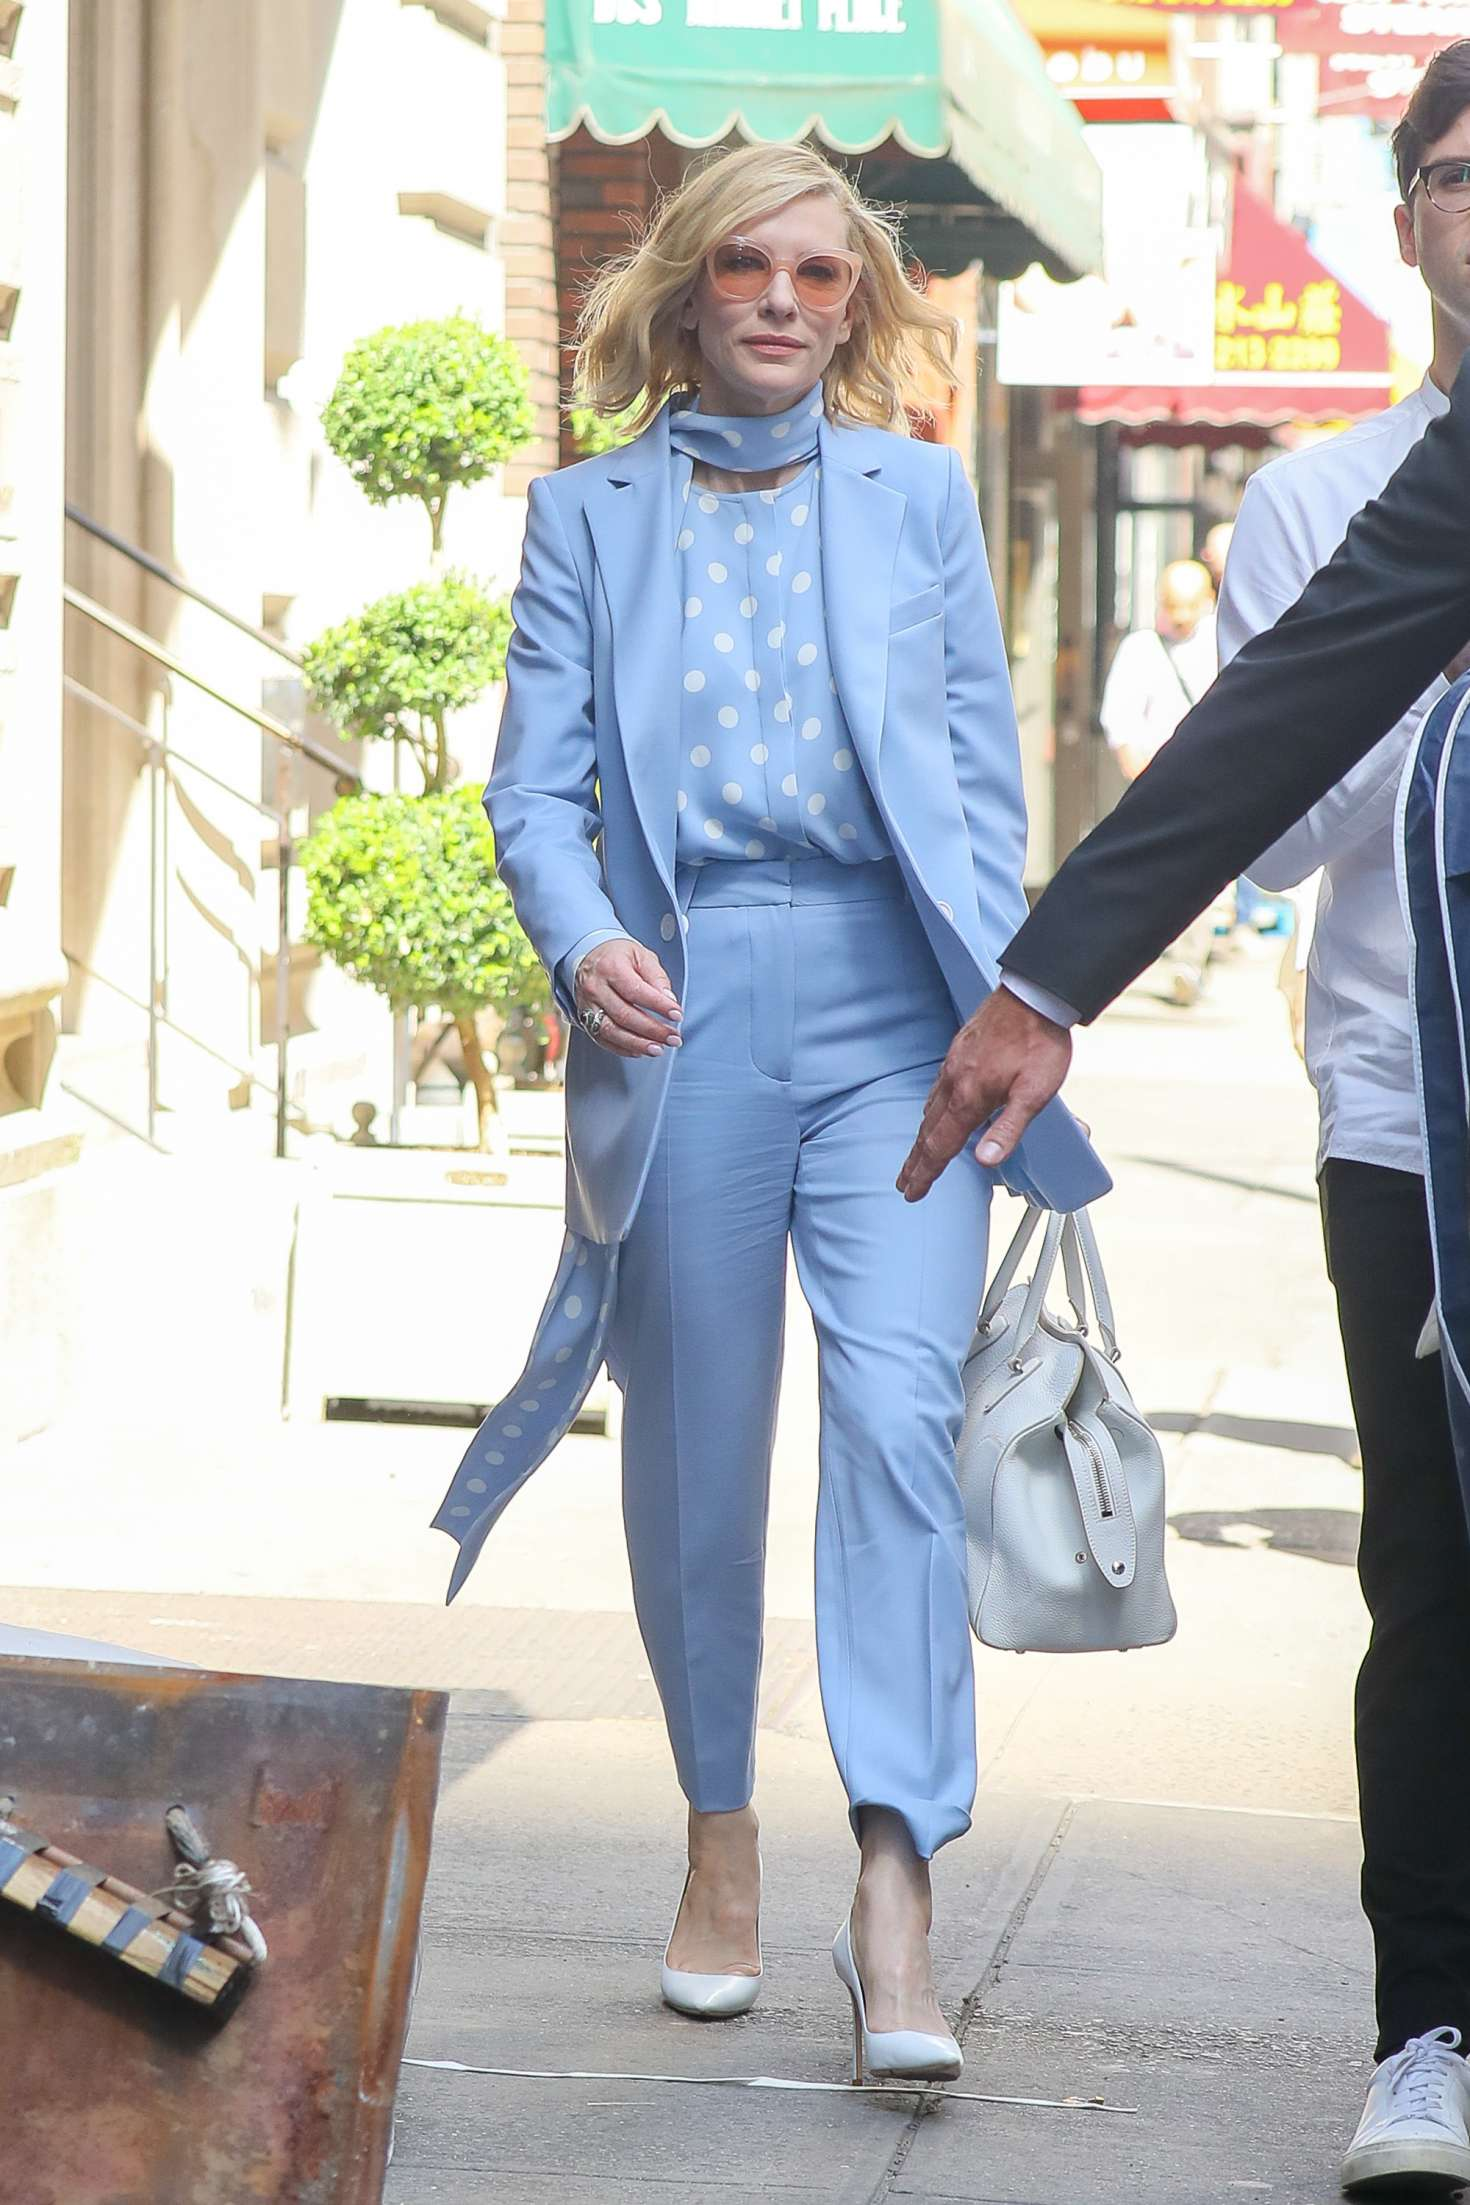 Cate Blanchett 2018 : Cate Blanchett in Light Blue outfit -06